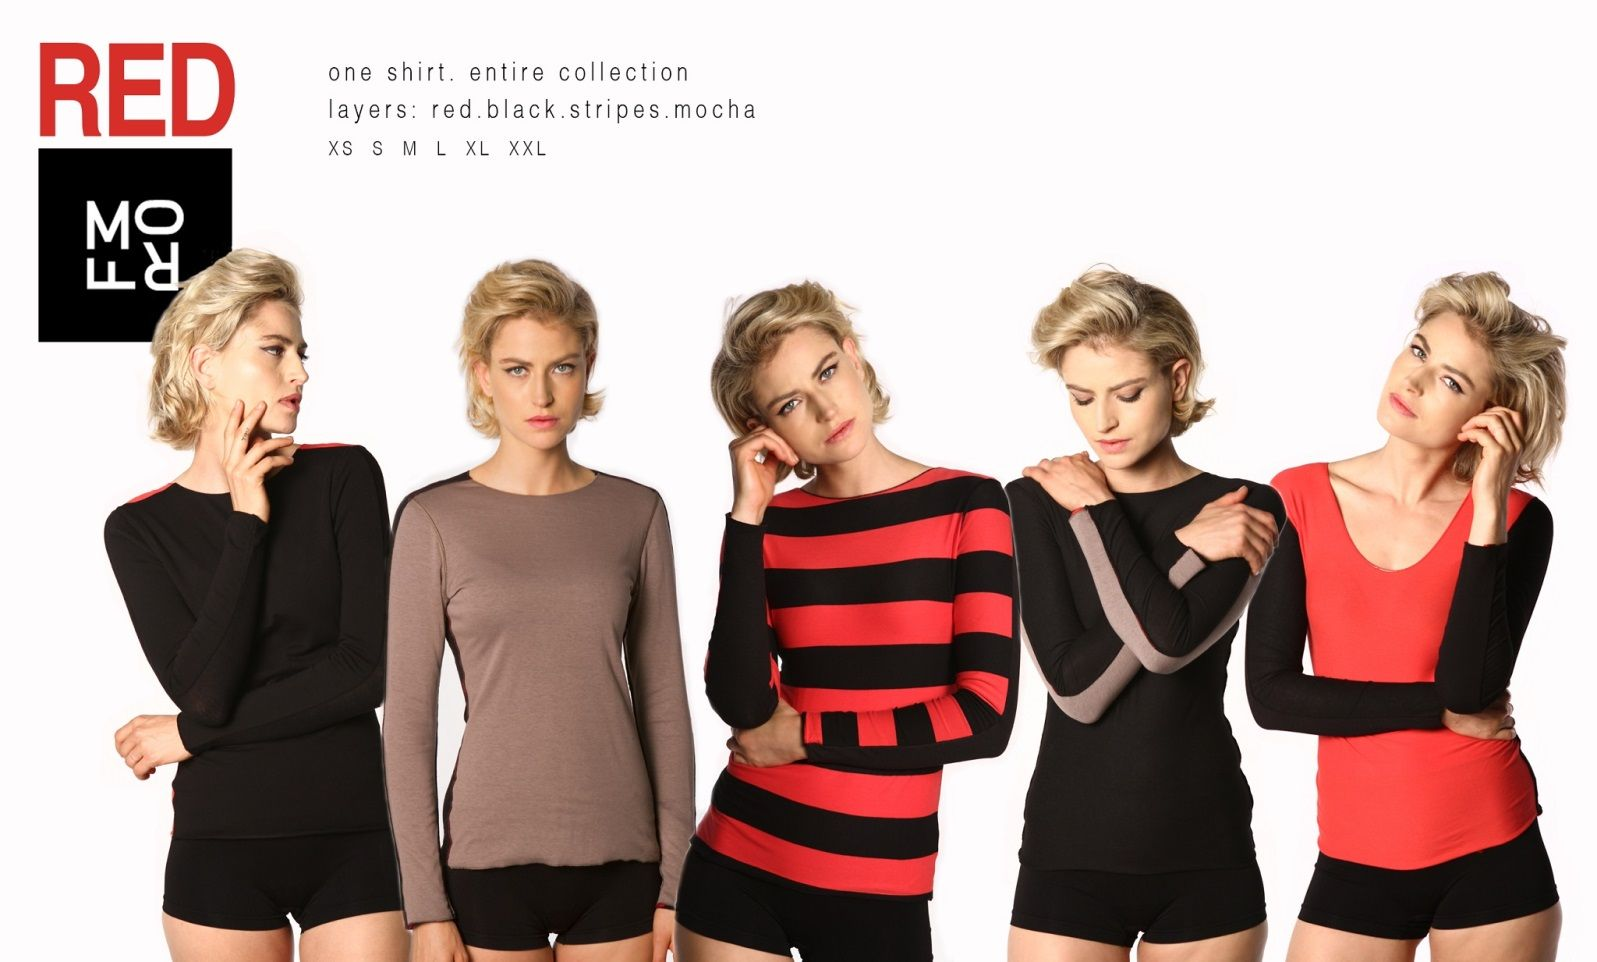 This is Morf's Red Collection, but it's really just one shirt. Photo via morf-fashion.com